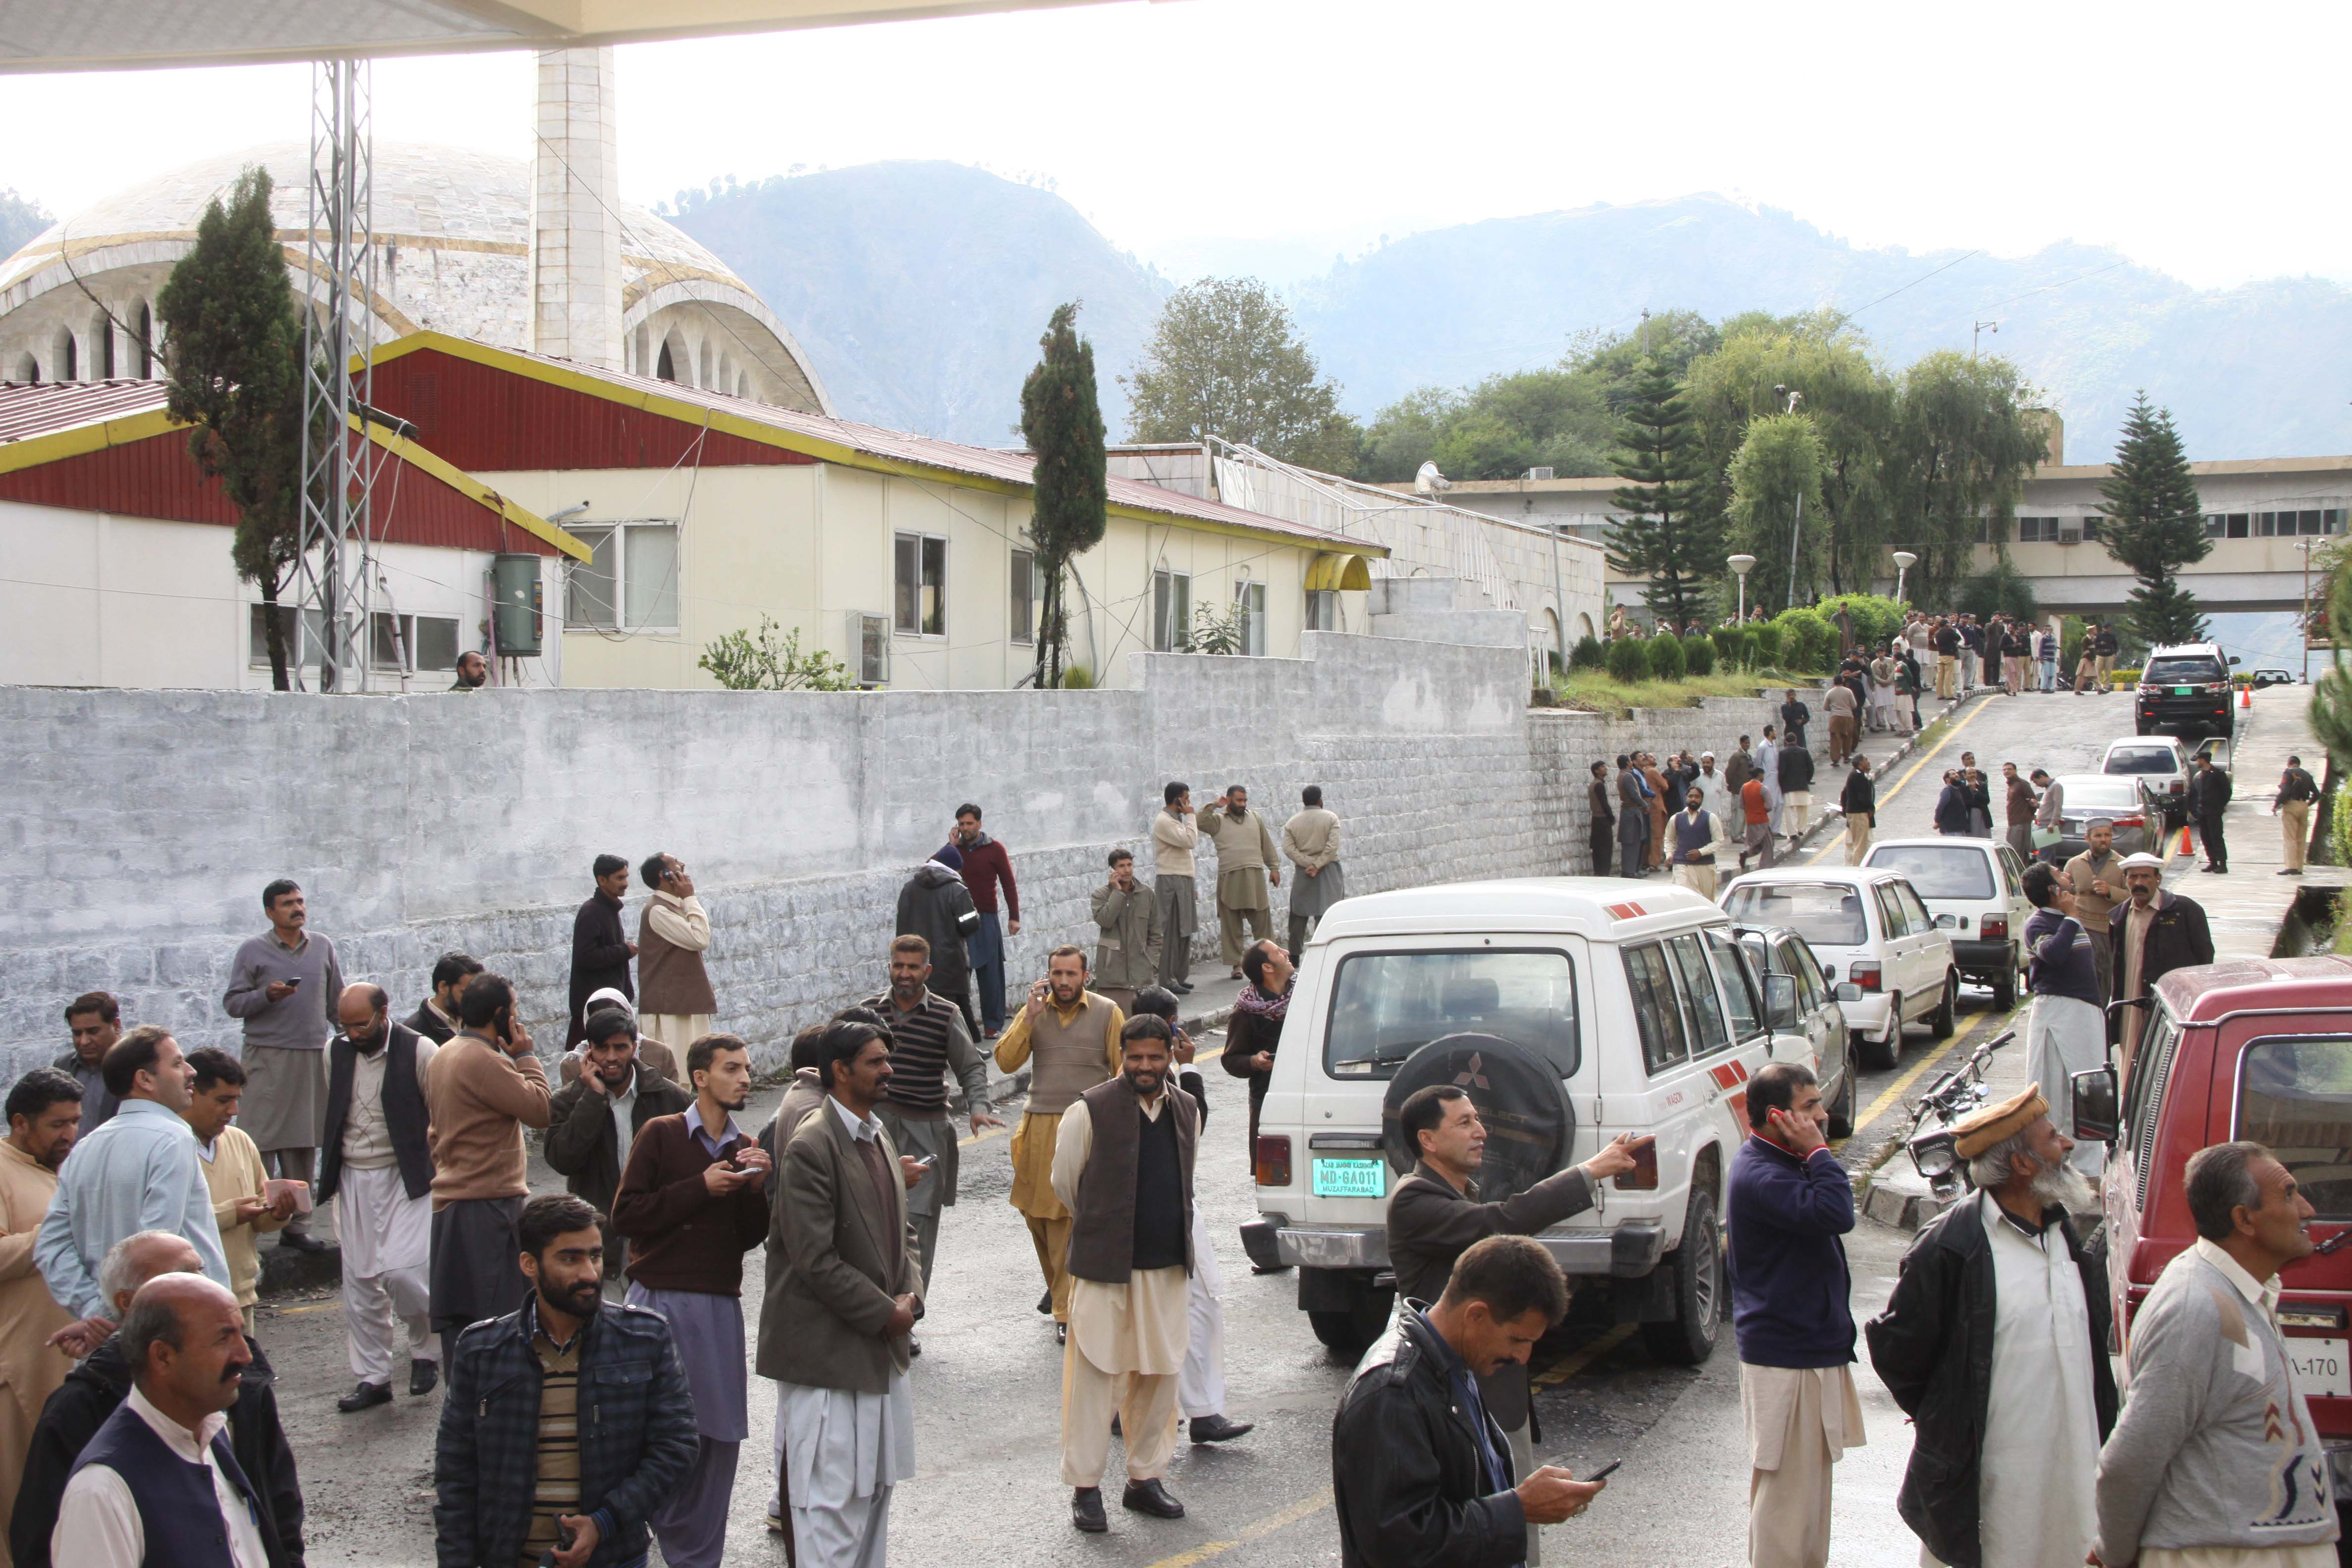 Earthquake-stricken Kashmiris gather outside their offices in Muzaffarabad after a 7.5-magnitude temblor rattled Pakistan and Kashmir, Oct. 26, 2015.